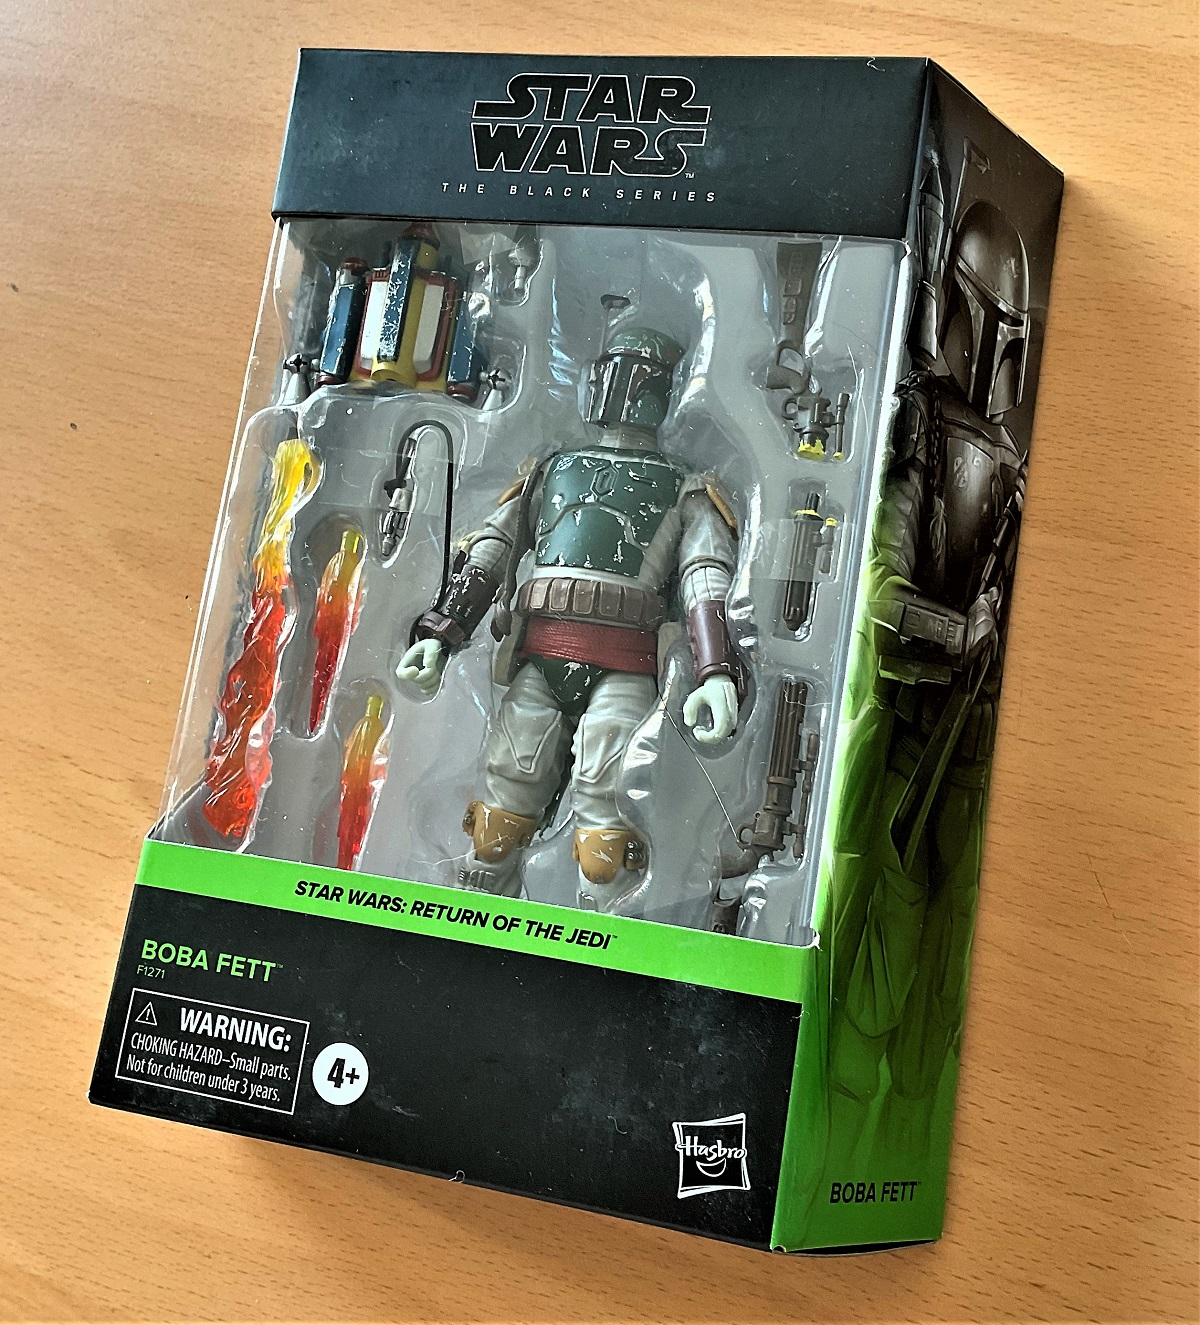 Star Wars, The Black Series miniature action figure of Boba Fett taken from Star Wars; Return of the